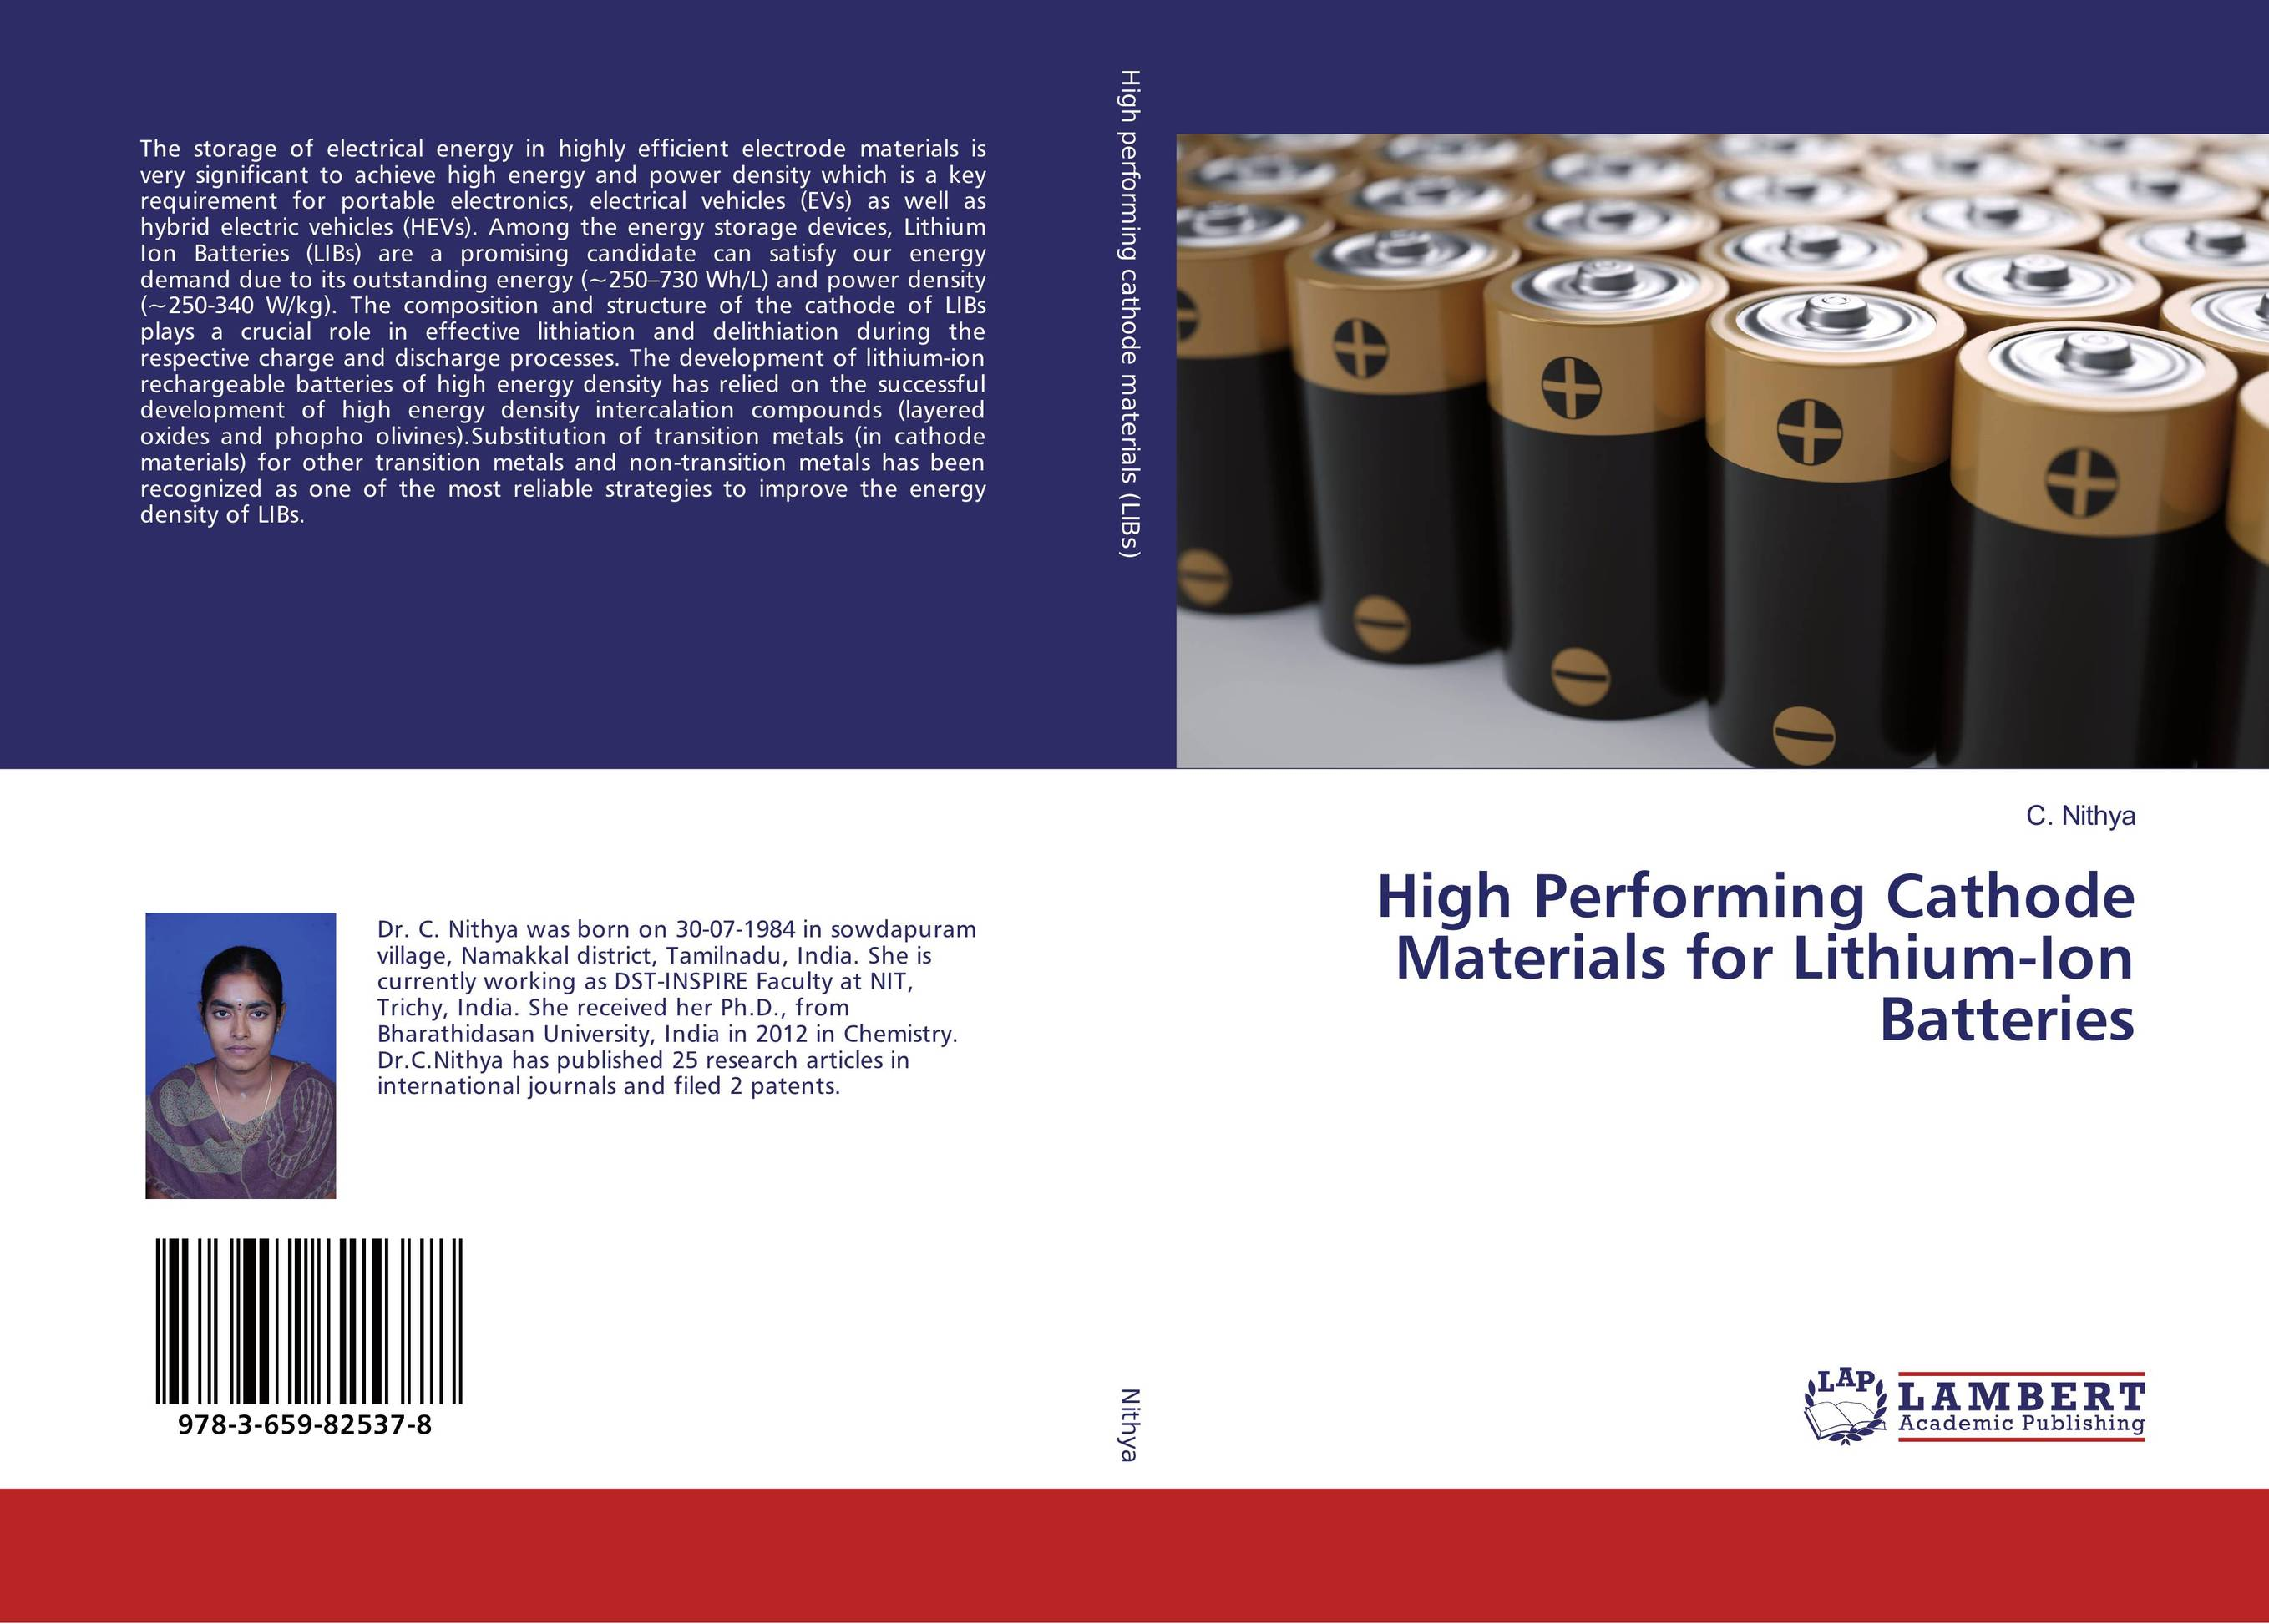 High Performing Cathode Materials for Lithium-Ion Batteries